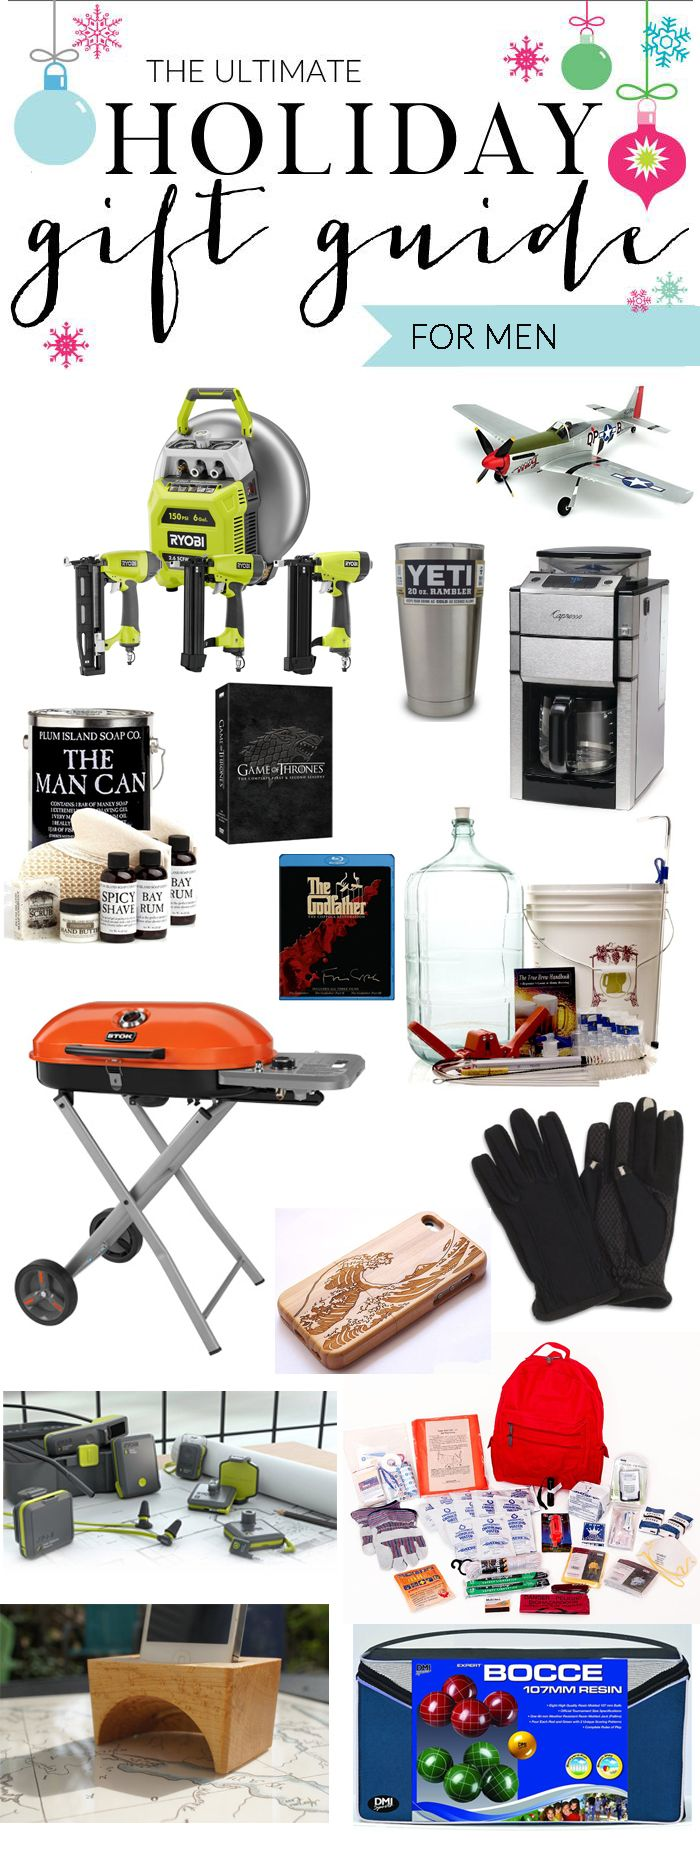 the ultimate holiday gift guide for men - gifts for all budgets!